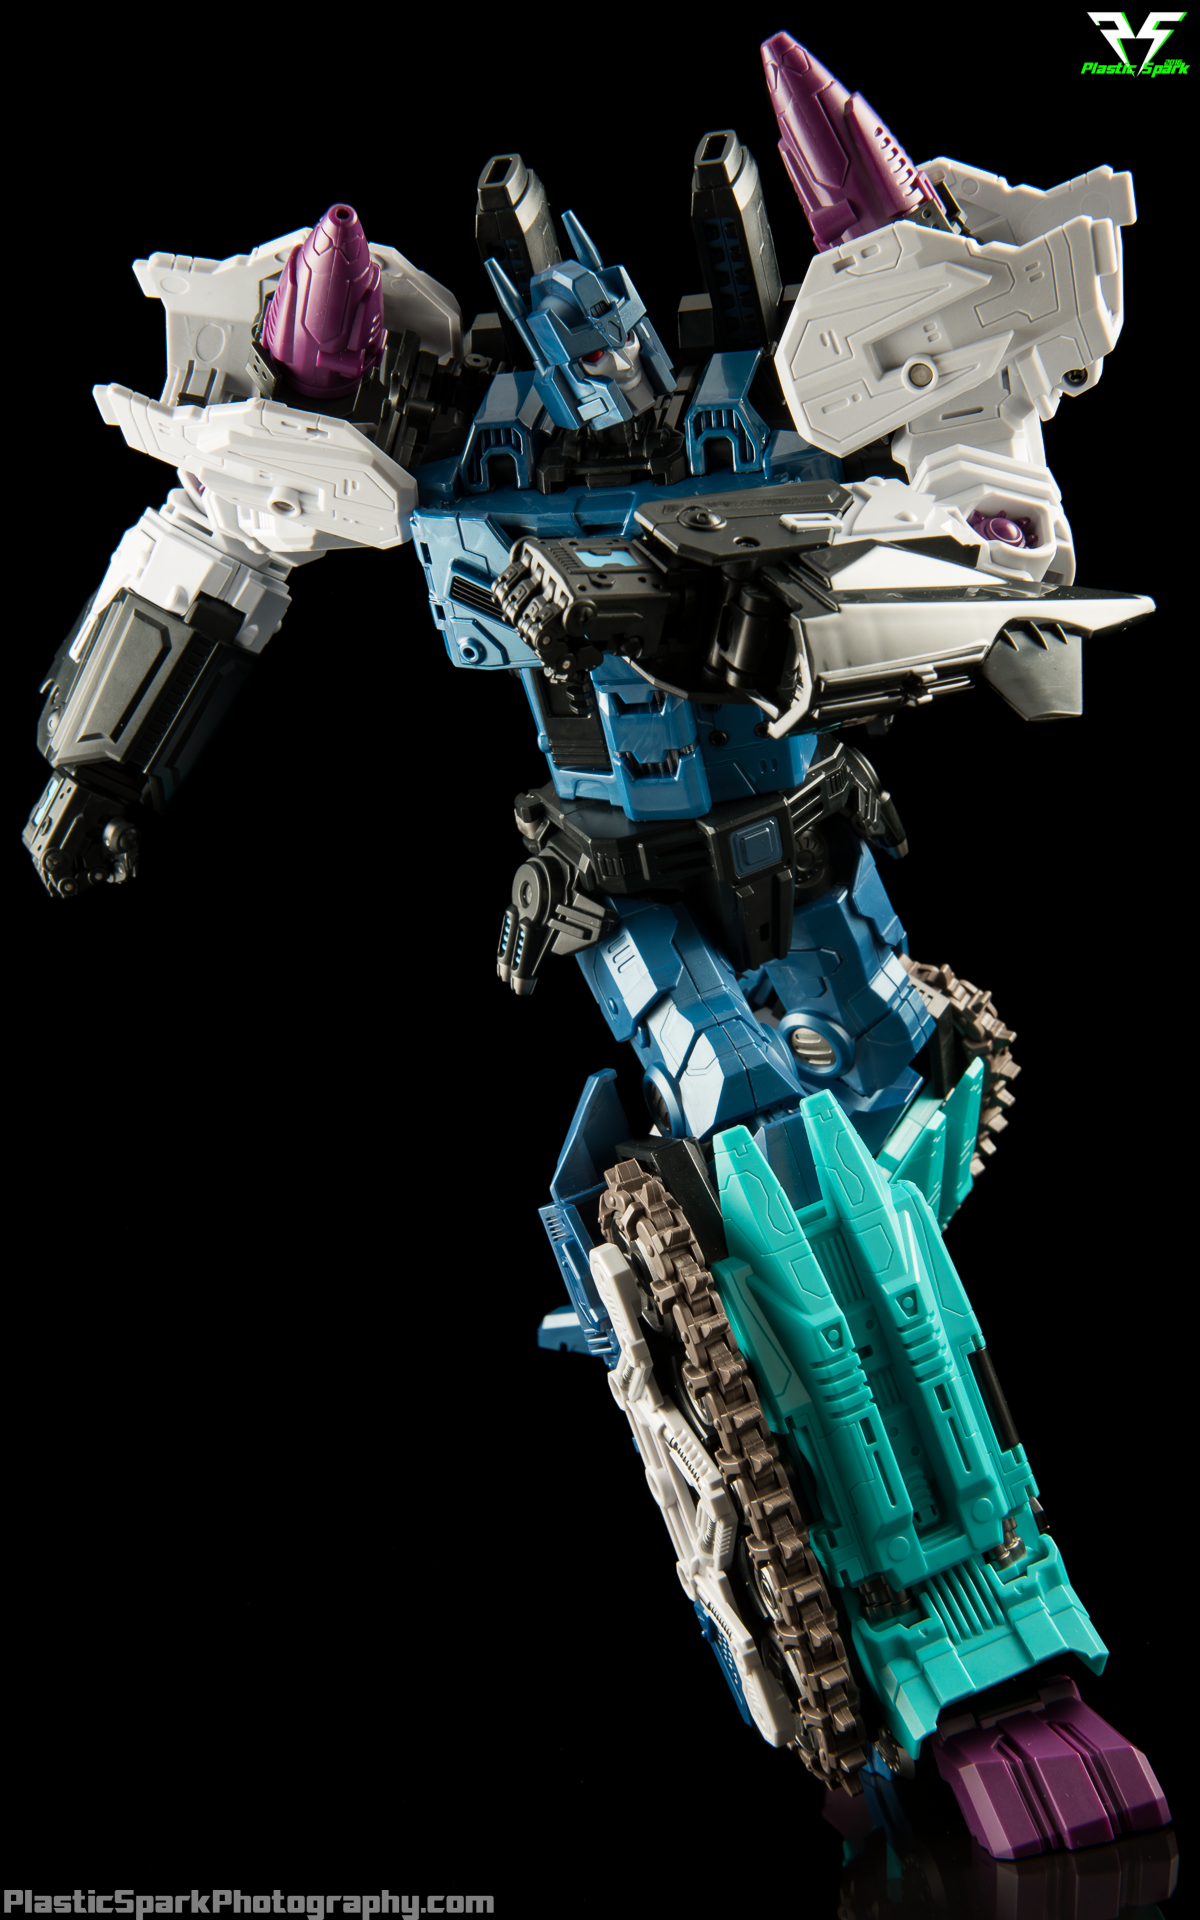 Mastemind-Creations-R17-Carnifex-(36-of-54).png